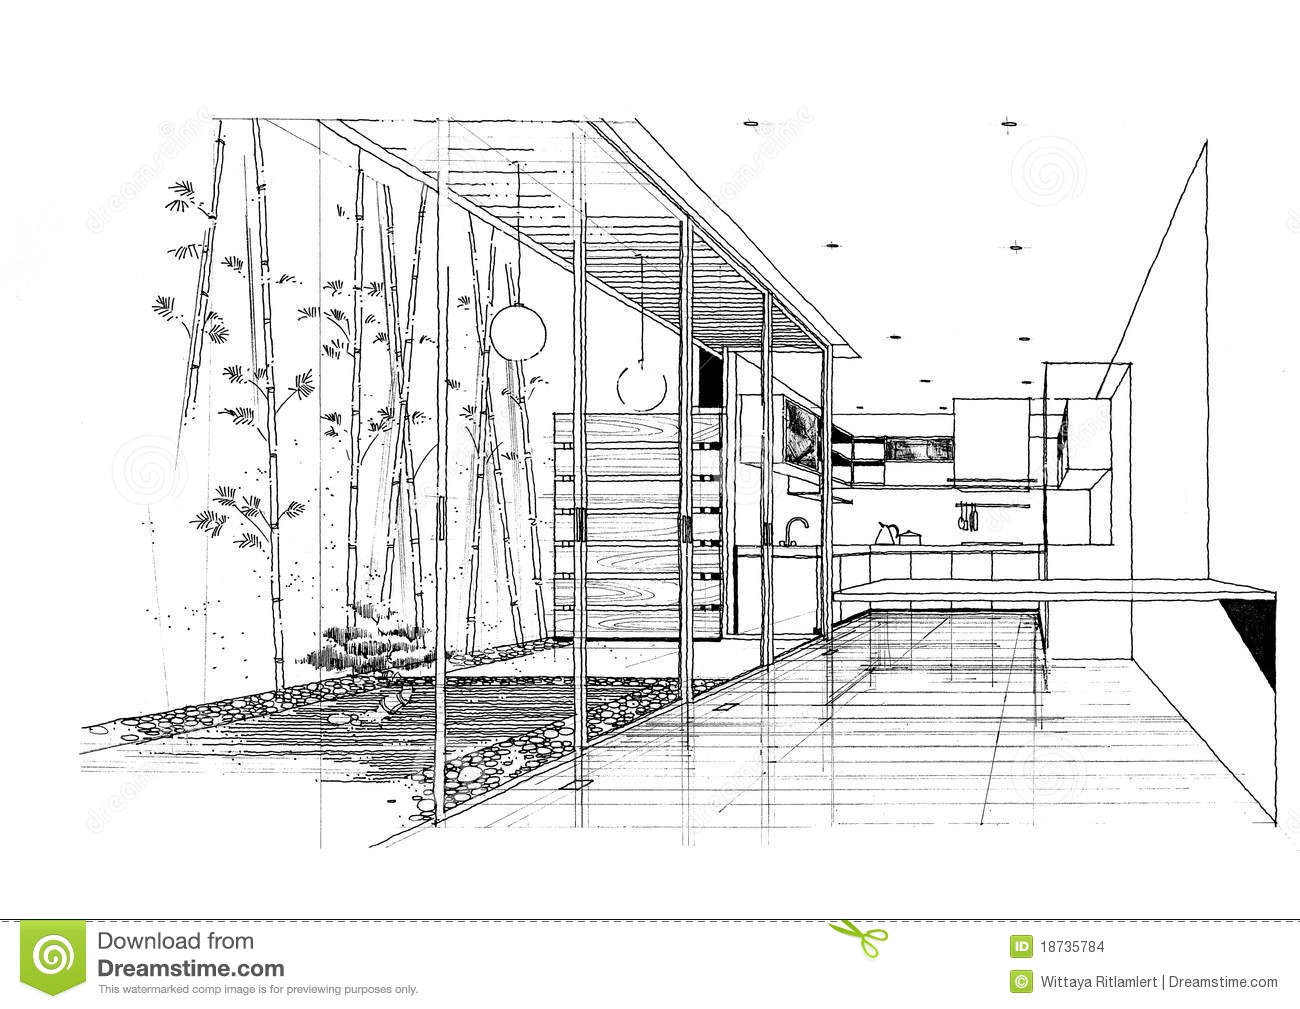 Mea Culpa besides Mahal residence mall meydan luxury shopping besides Bjarke Thinks Big About Sustainability additionally Set 08  plete Vector Set besides Royalty Free Stock Photo Black White Sketch Building Image29929675. on architectural rendering